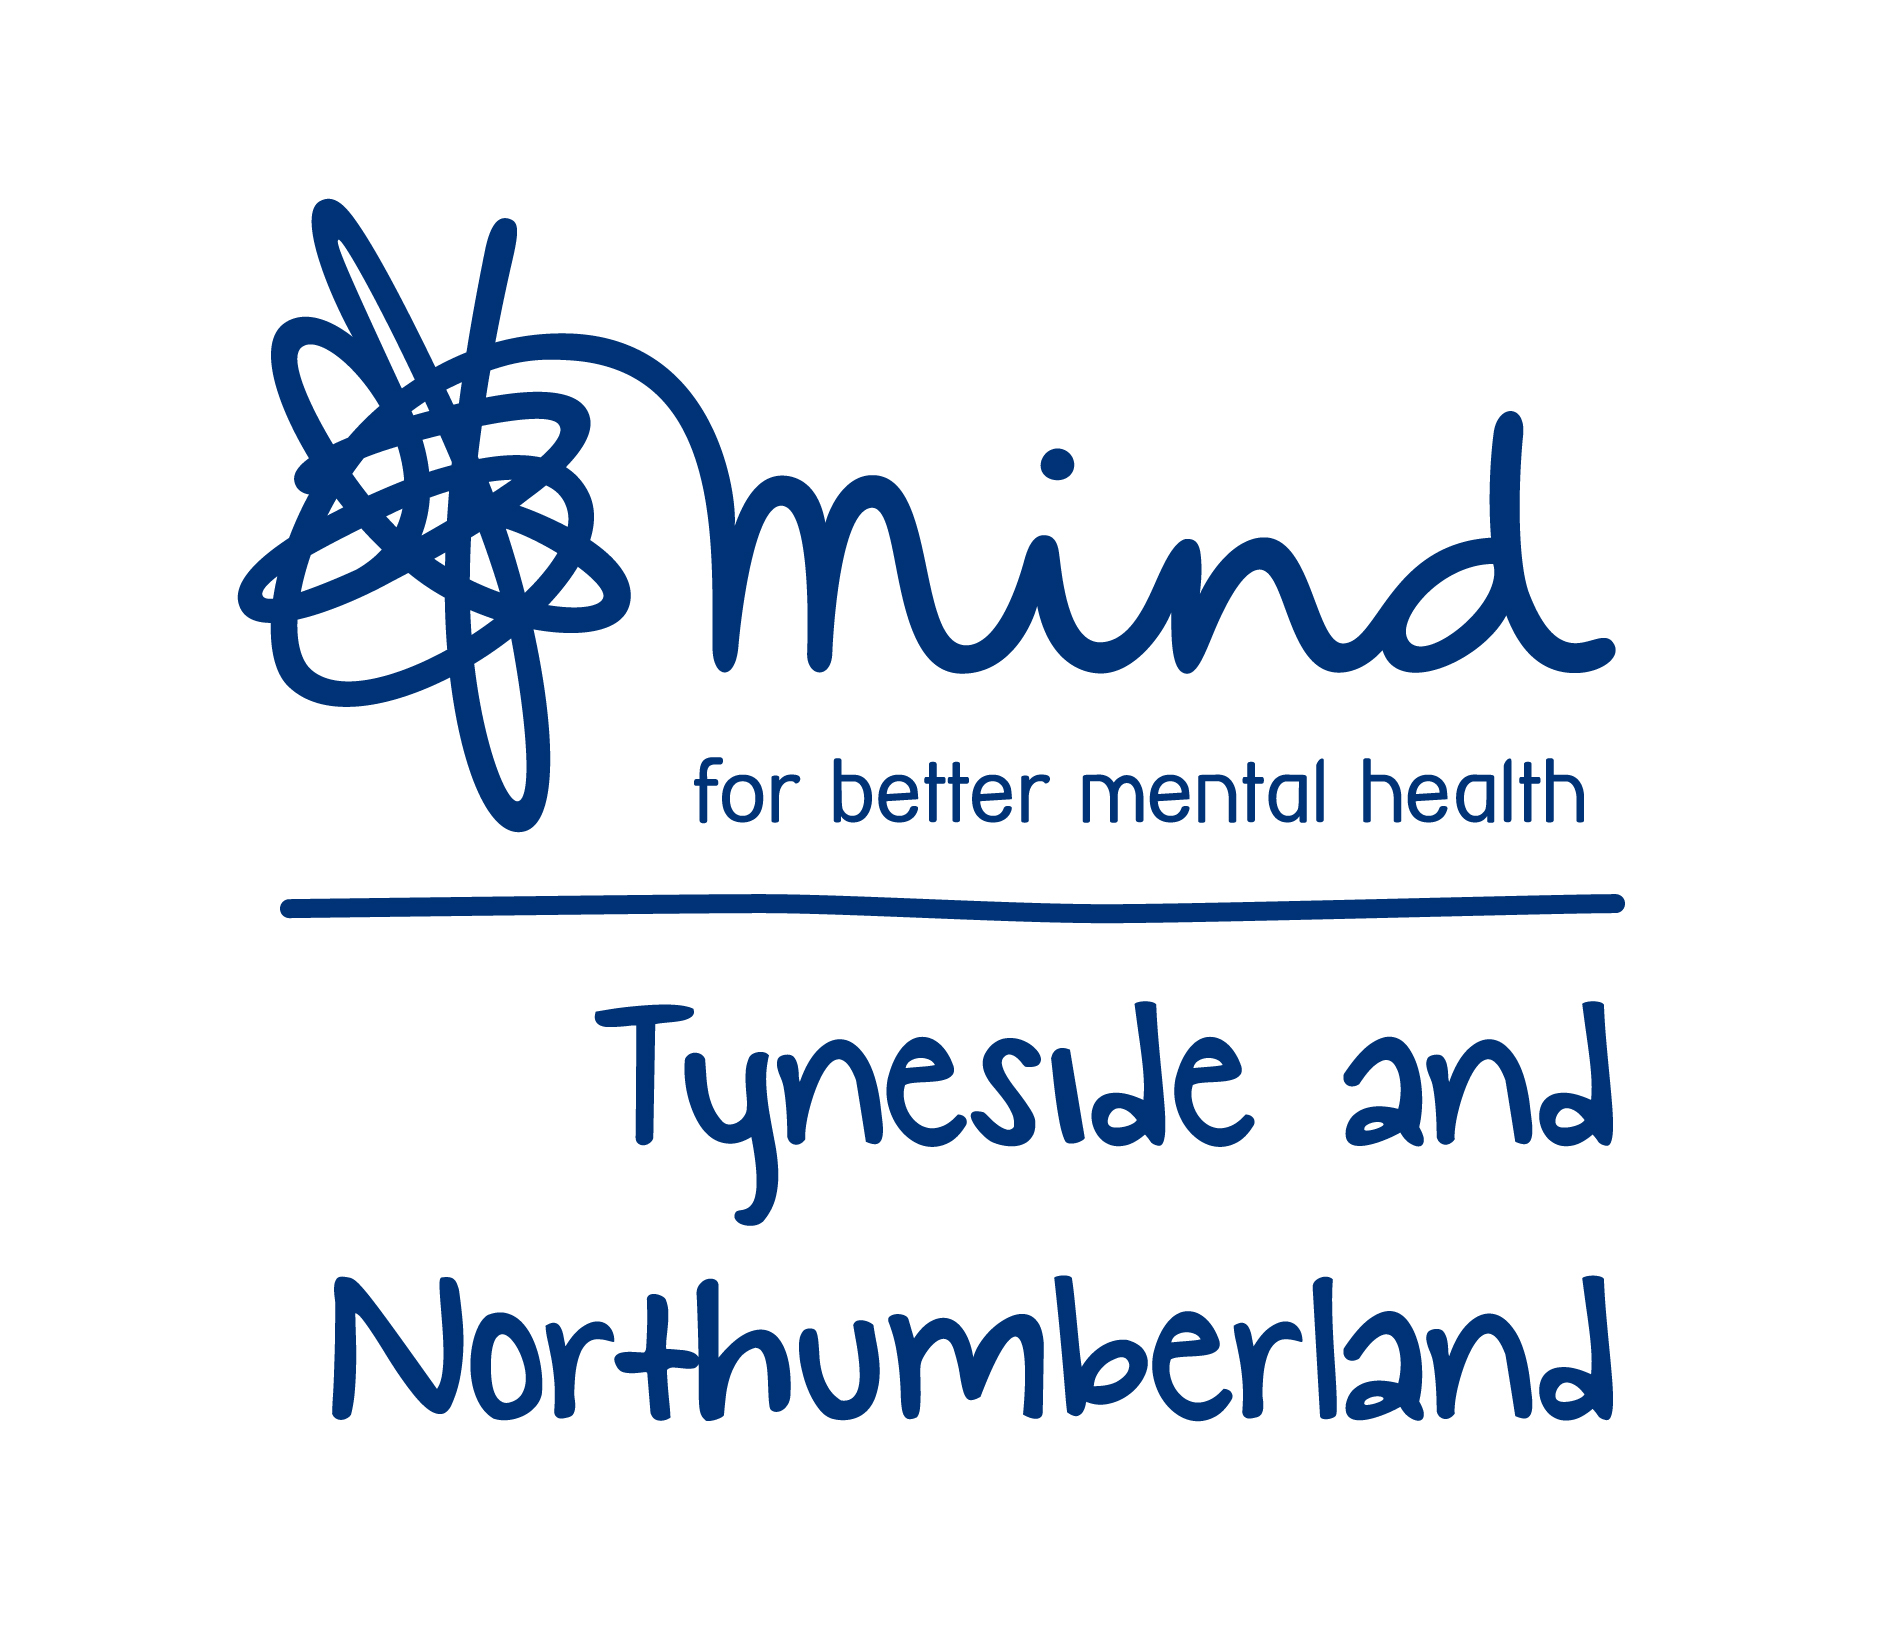 logo for mental health charity Tyneside and Northumberland Mind